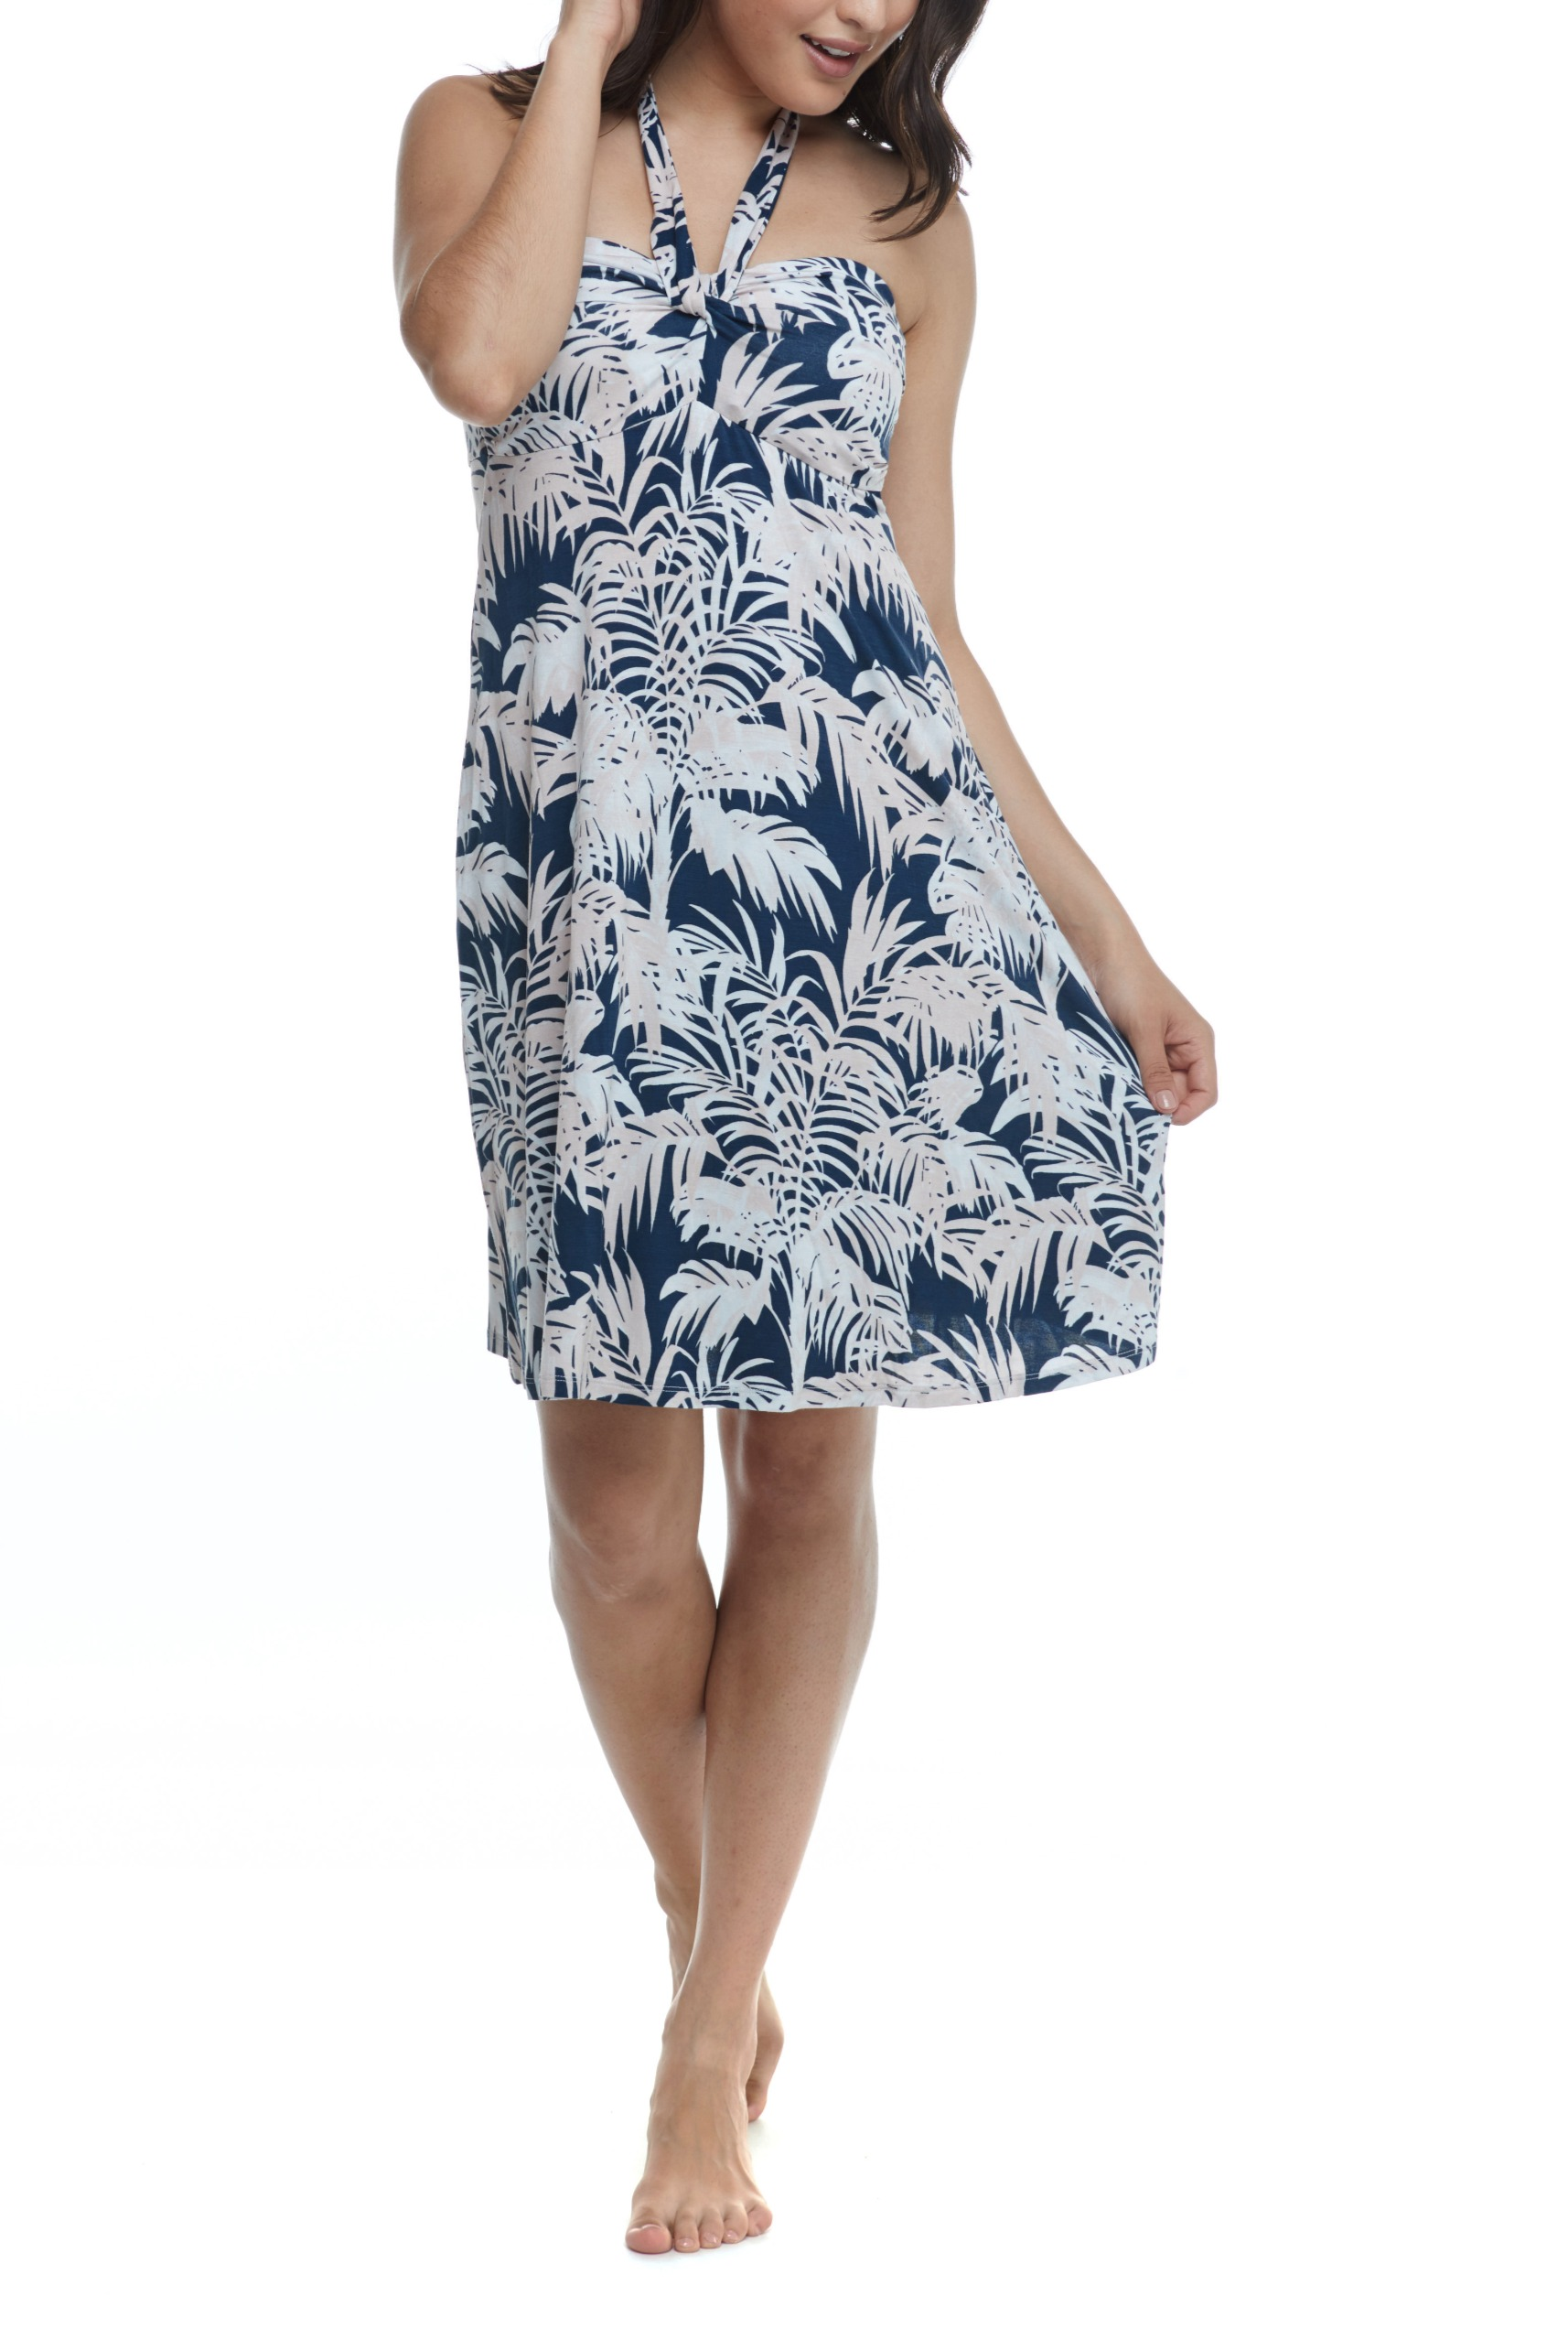 SKYE-S21-COVERUPS-Palm_Cove-Donna_Front_